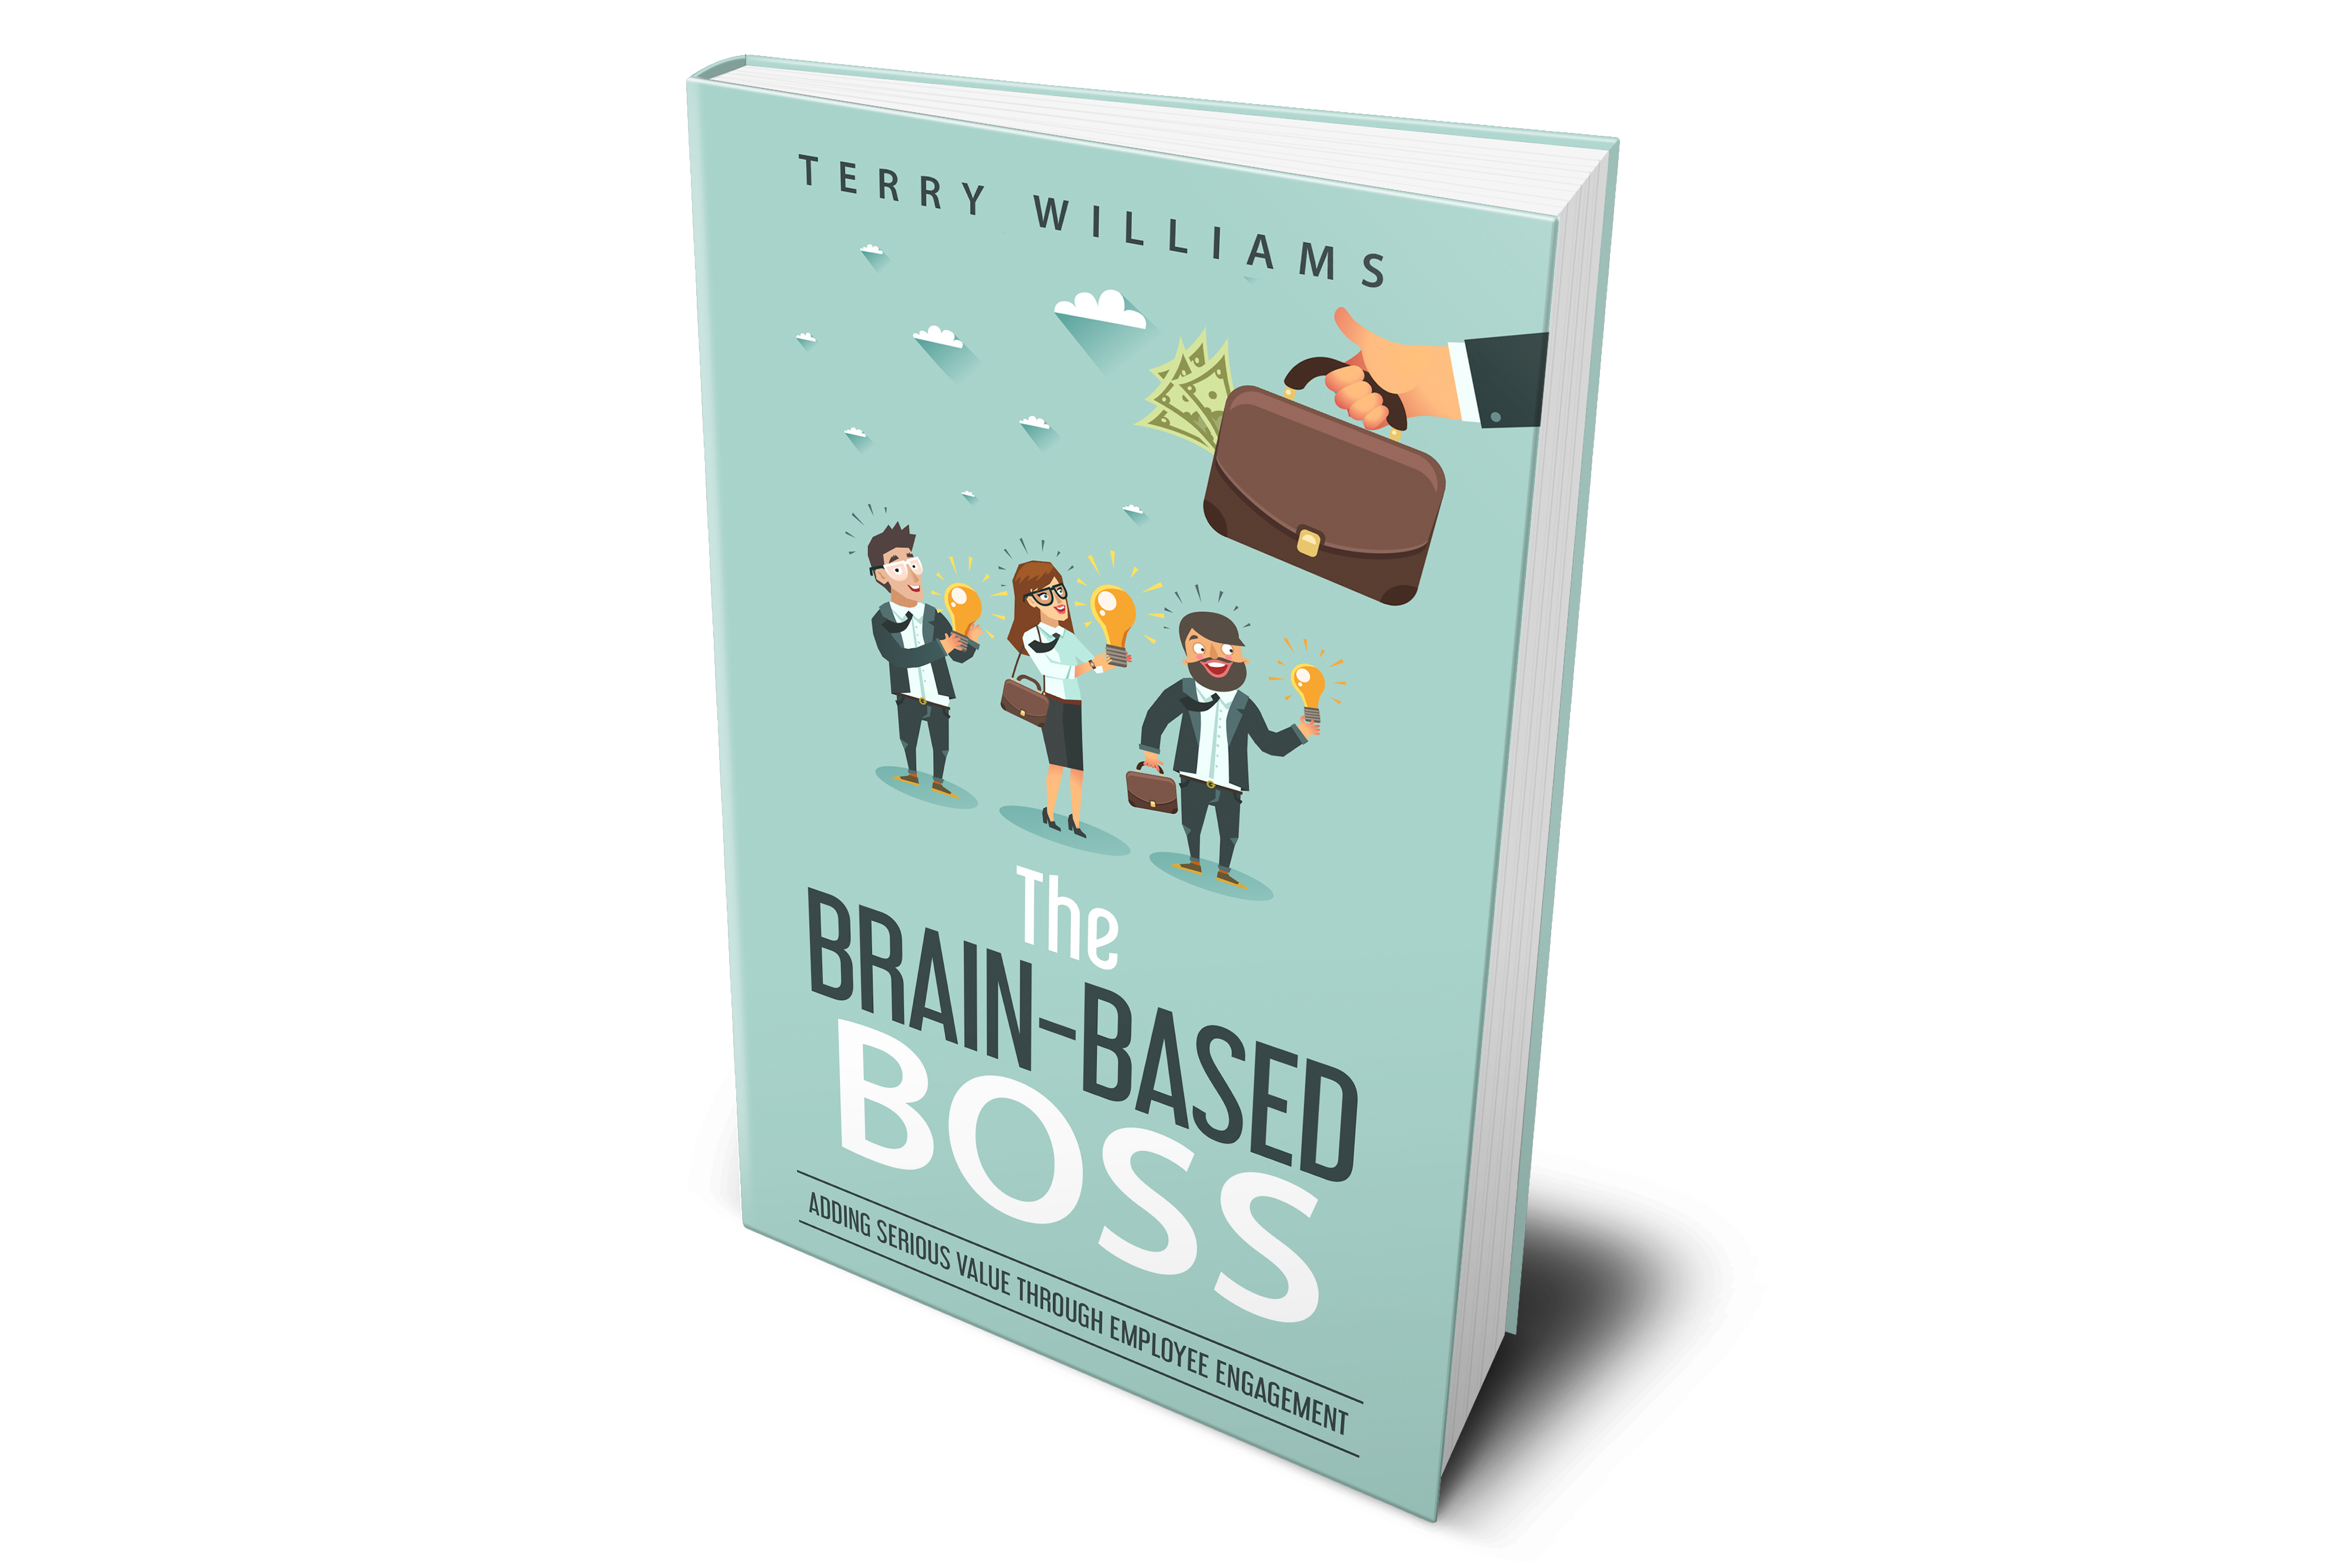 Buy The Brain-Based Boss Cover now